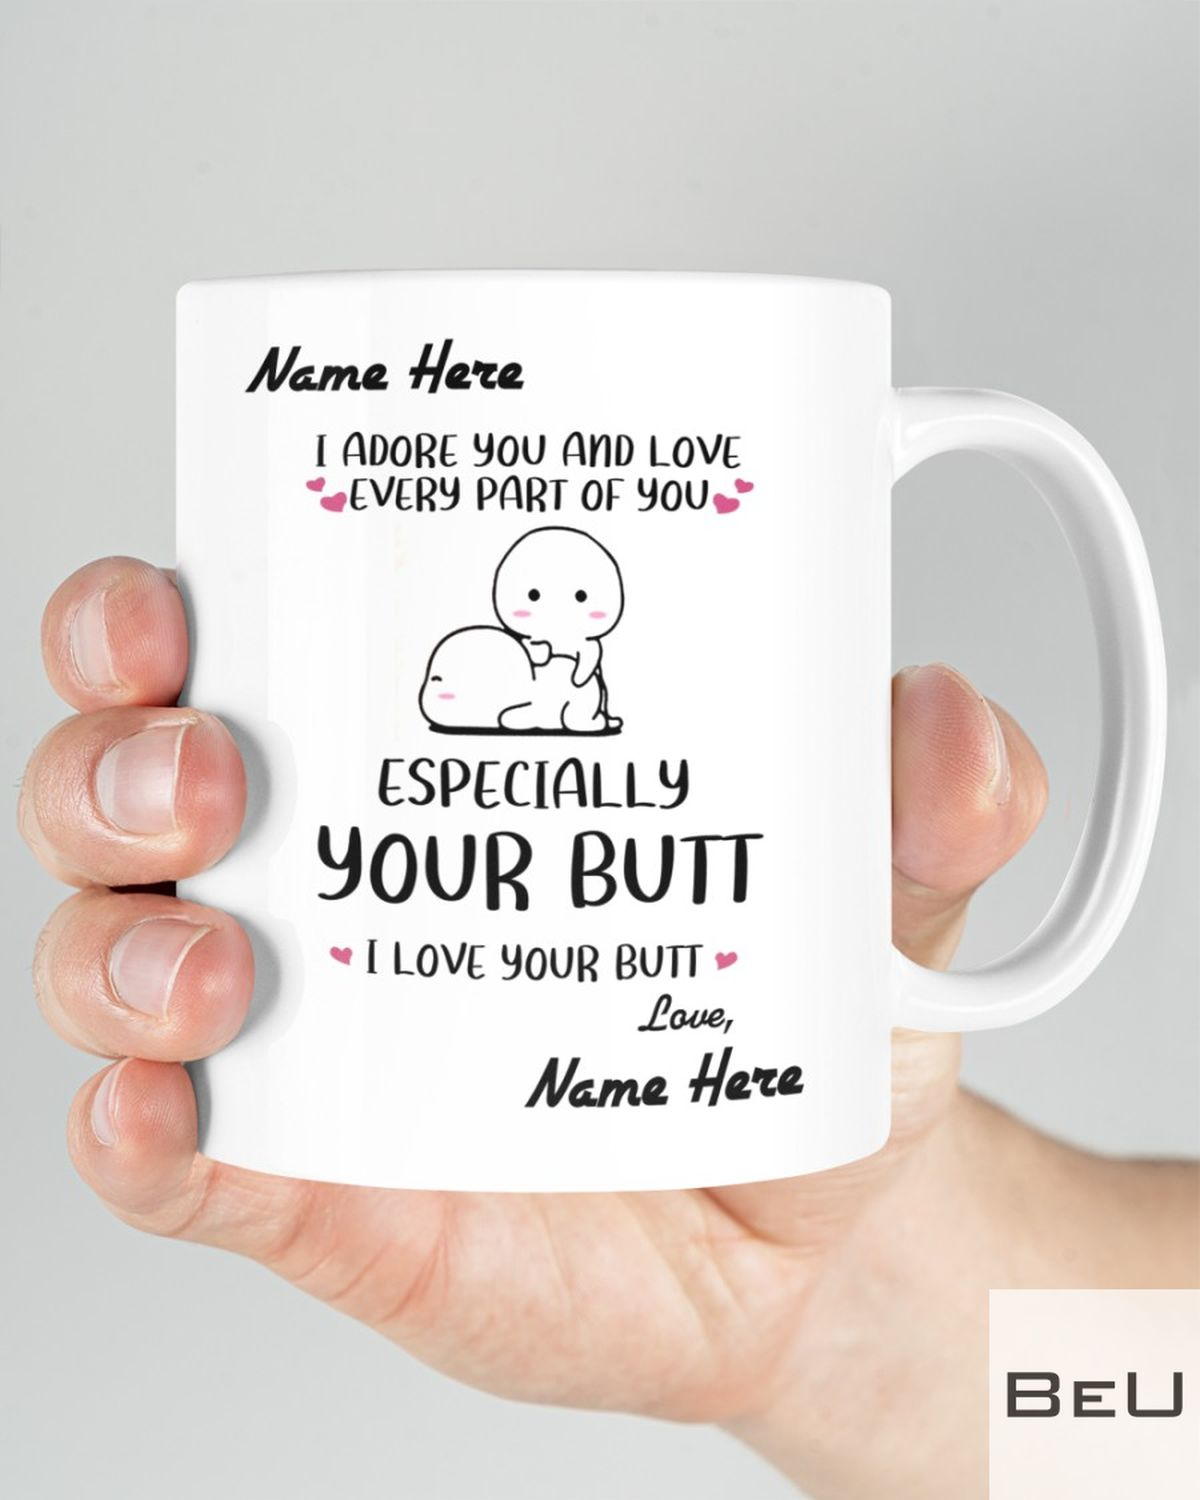 Personalized I adore you and love every part of you especially your butt mugz